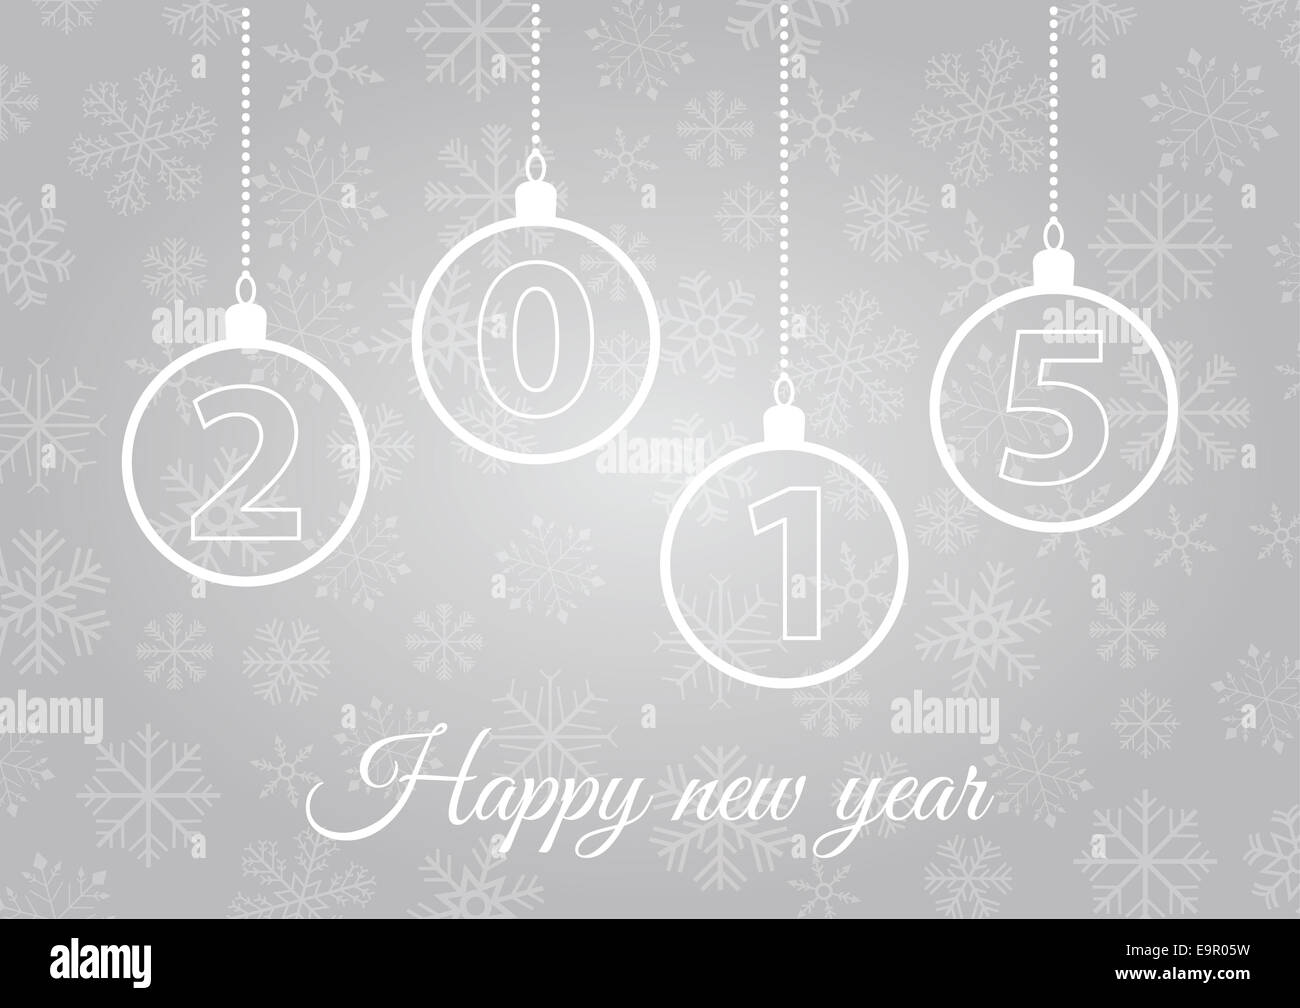 New Years Silver Greeting Card For 2015 Stock Photo 74878437 Alamy